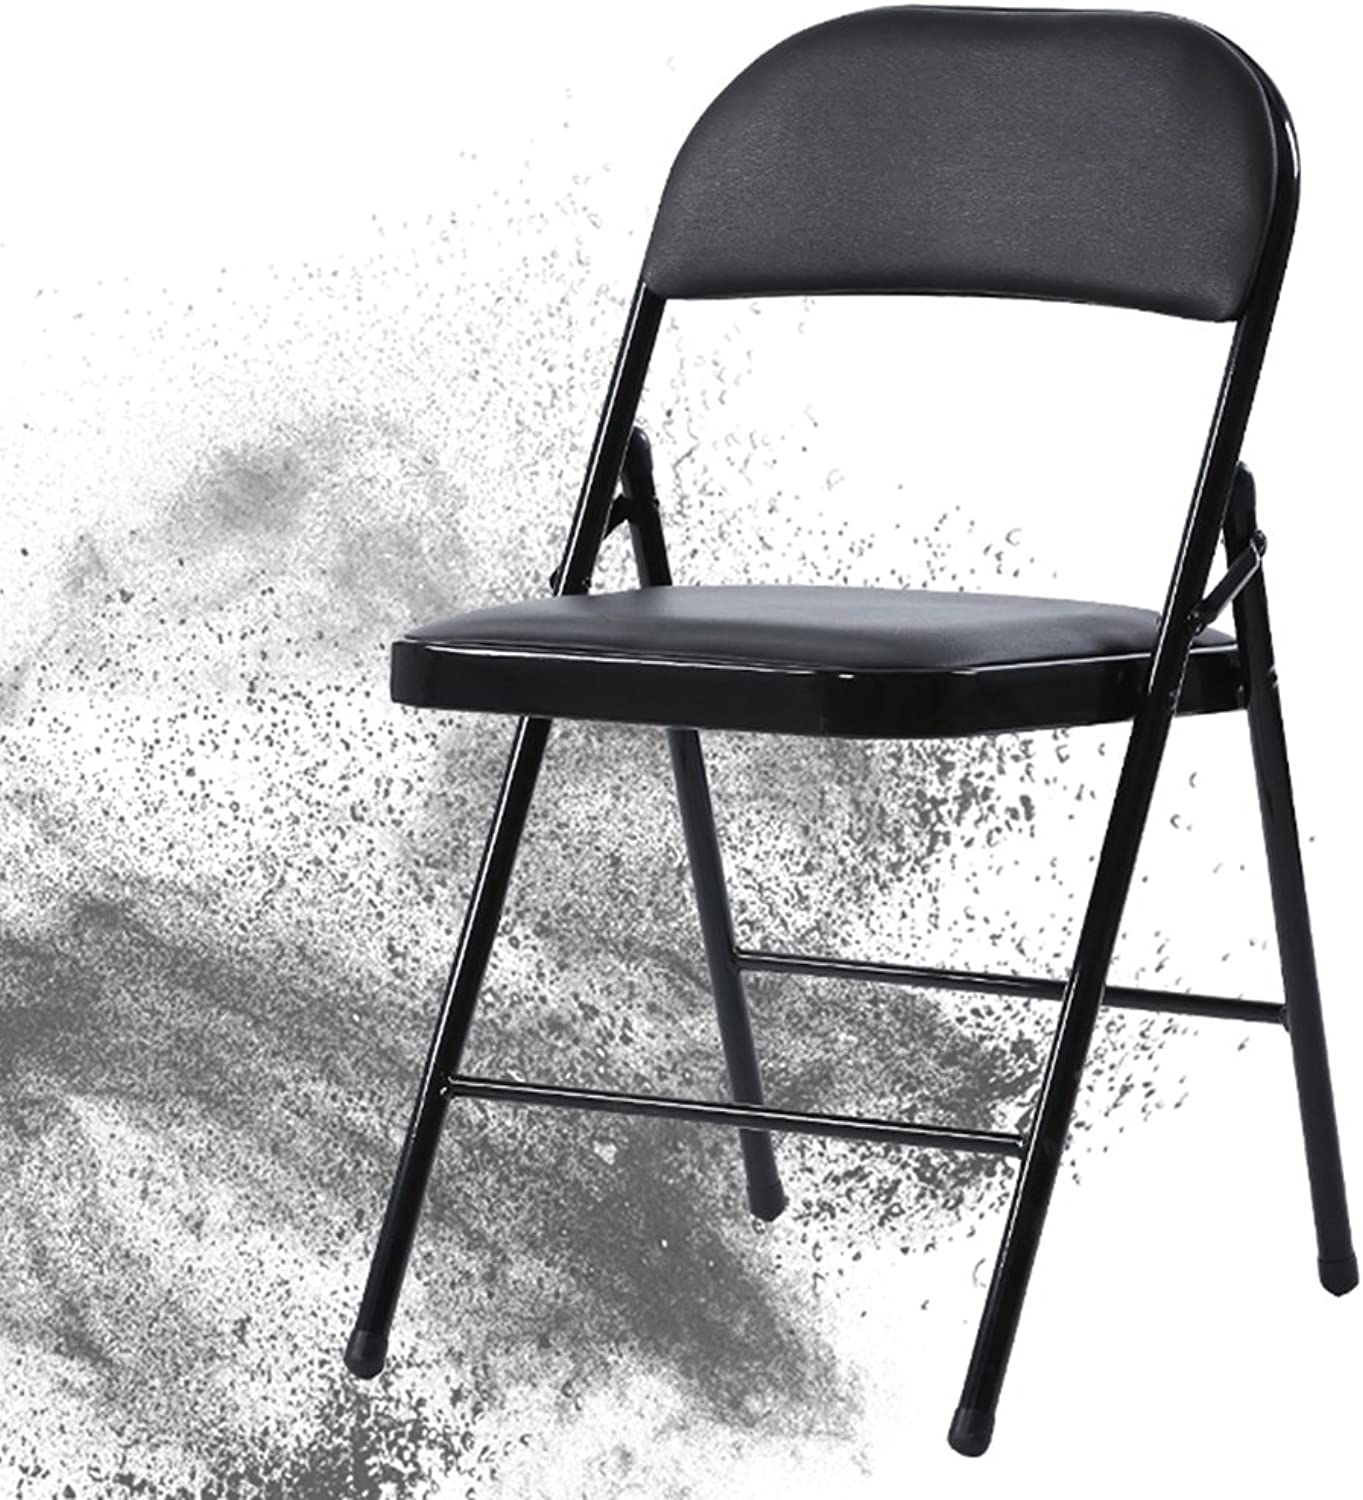 Chairs Folding Chair Simple Portable Chair backrest Adult Dining Chair Home Living Room Chair Plastic Stool Meeting Chair color Stool Computer Chair (color   Black, Size   44  46  76cm)